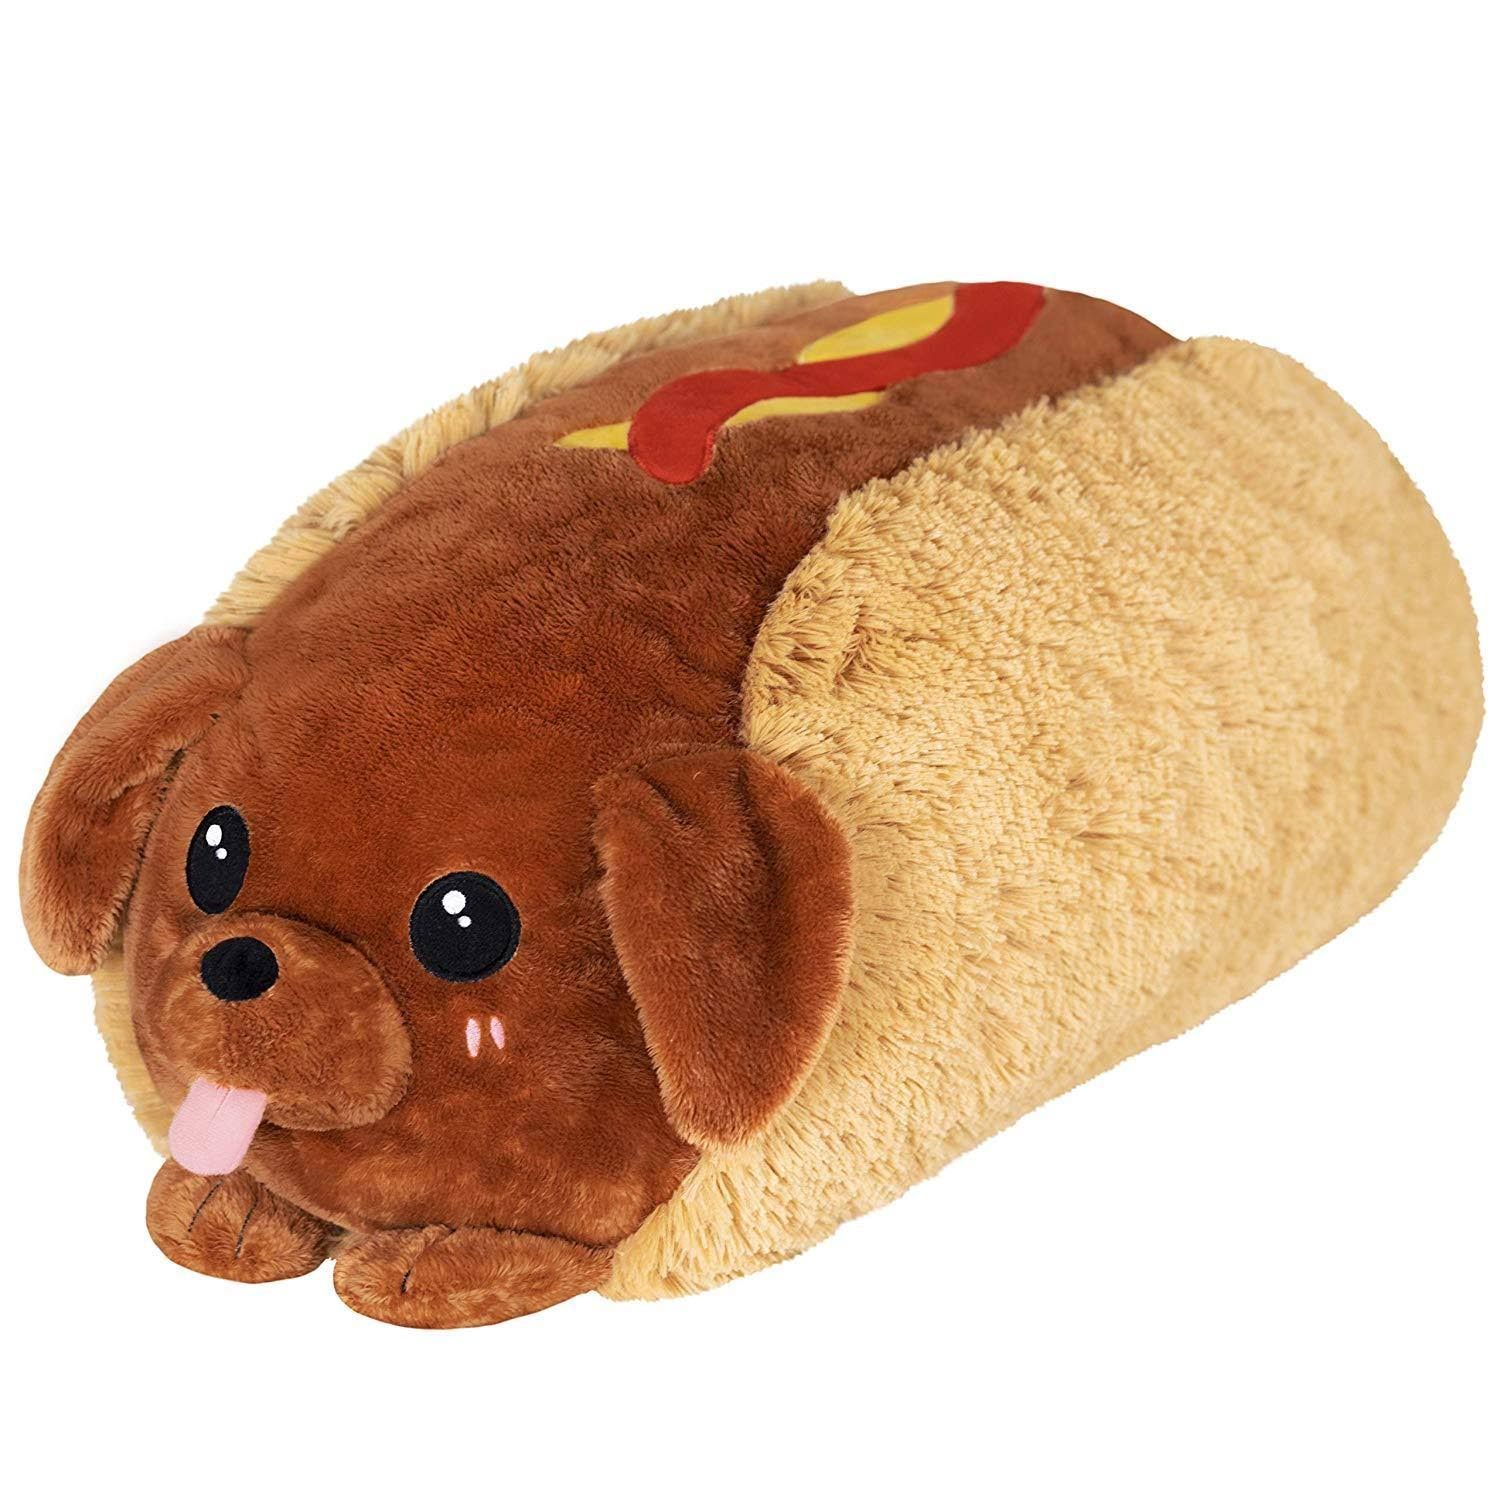 Squishable / Dachshund Hot Dog - 15""